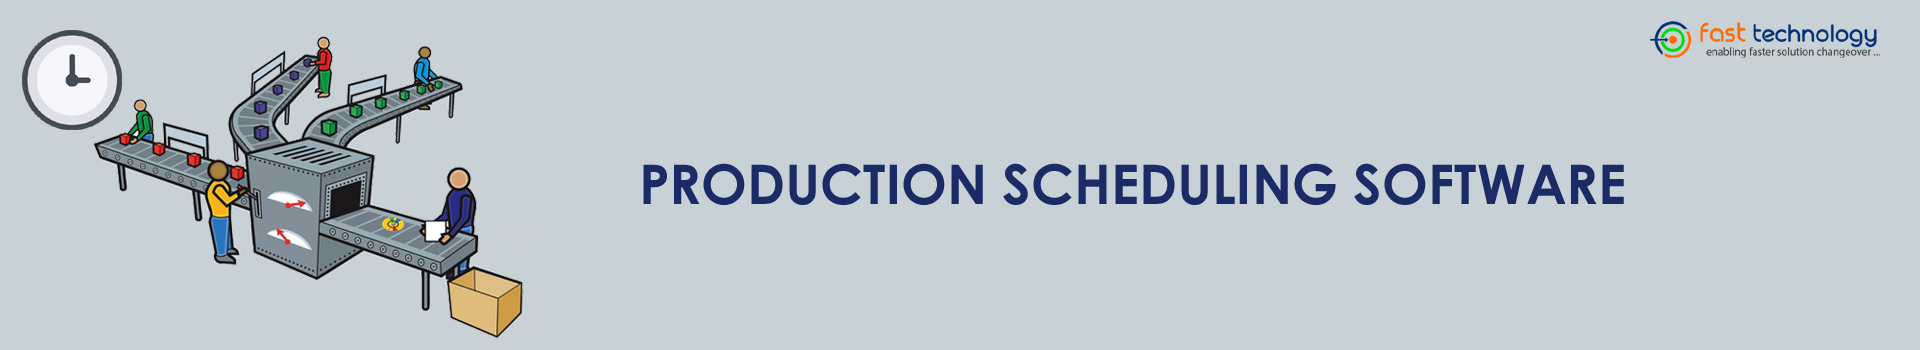 production-scheduling-software